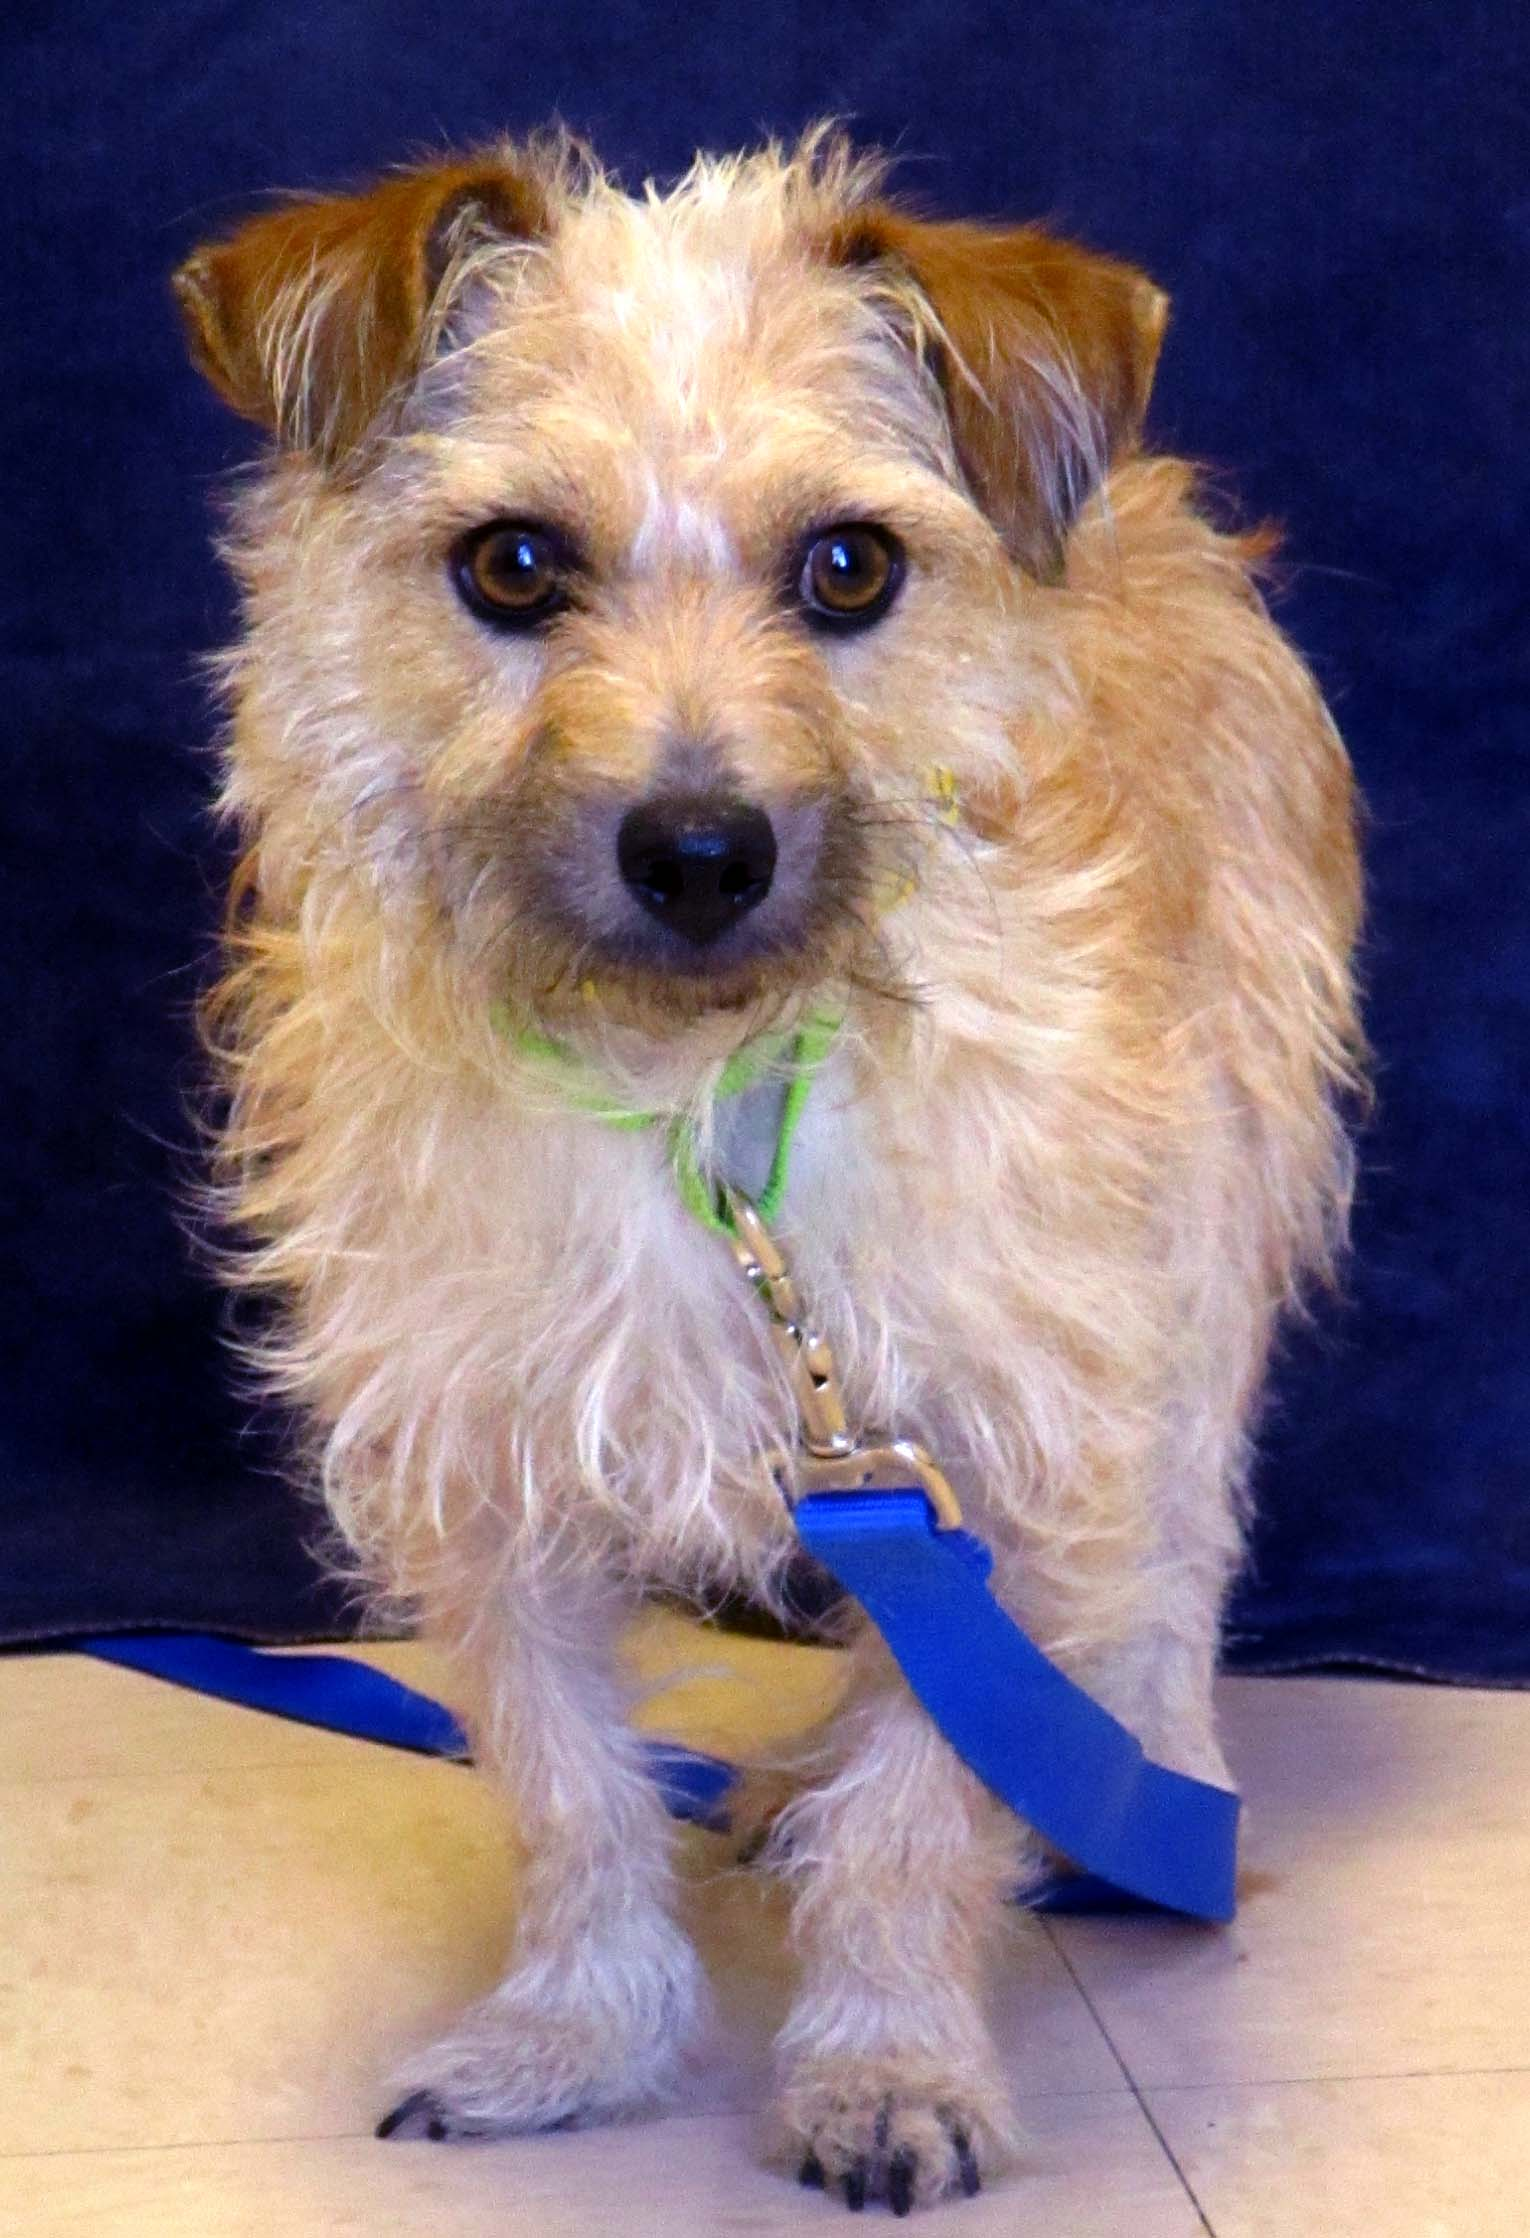 Dracula is a 2 year old terrier mix. He would do best with adults as he needs a calm and quiet home. He did fine with dogs and avoided the cat. He has been spending time with several calm, small sized dogs which has been helping his confidence. Dracula will shine best in a patient home that will give him a lot of time to build trust with the new family and surroundings.